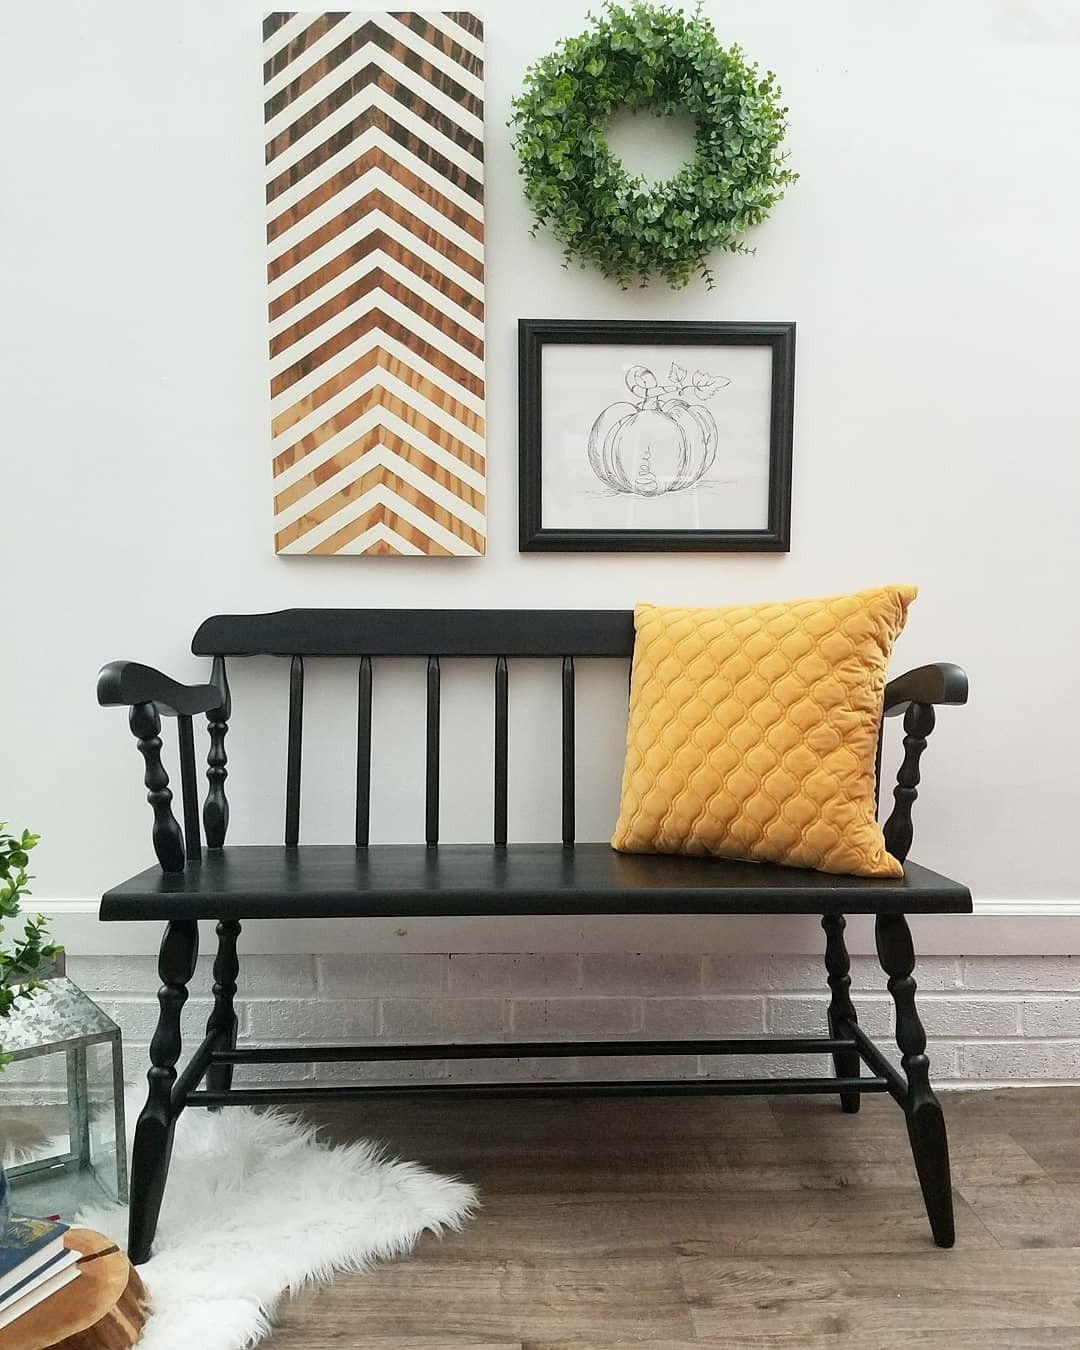 Black deacons bench. (With images) | Deacons bench, Decor ...